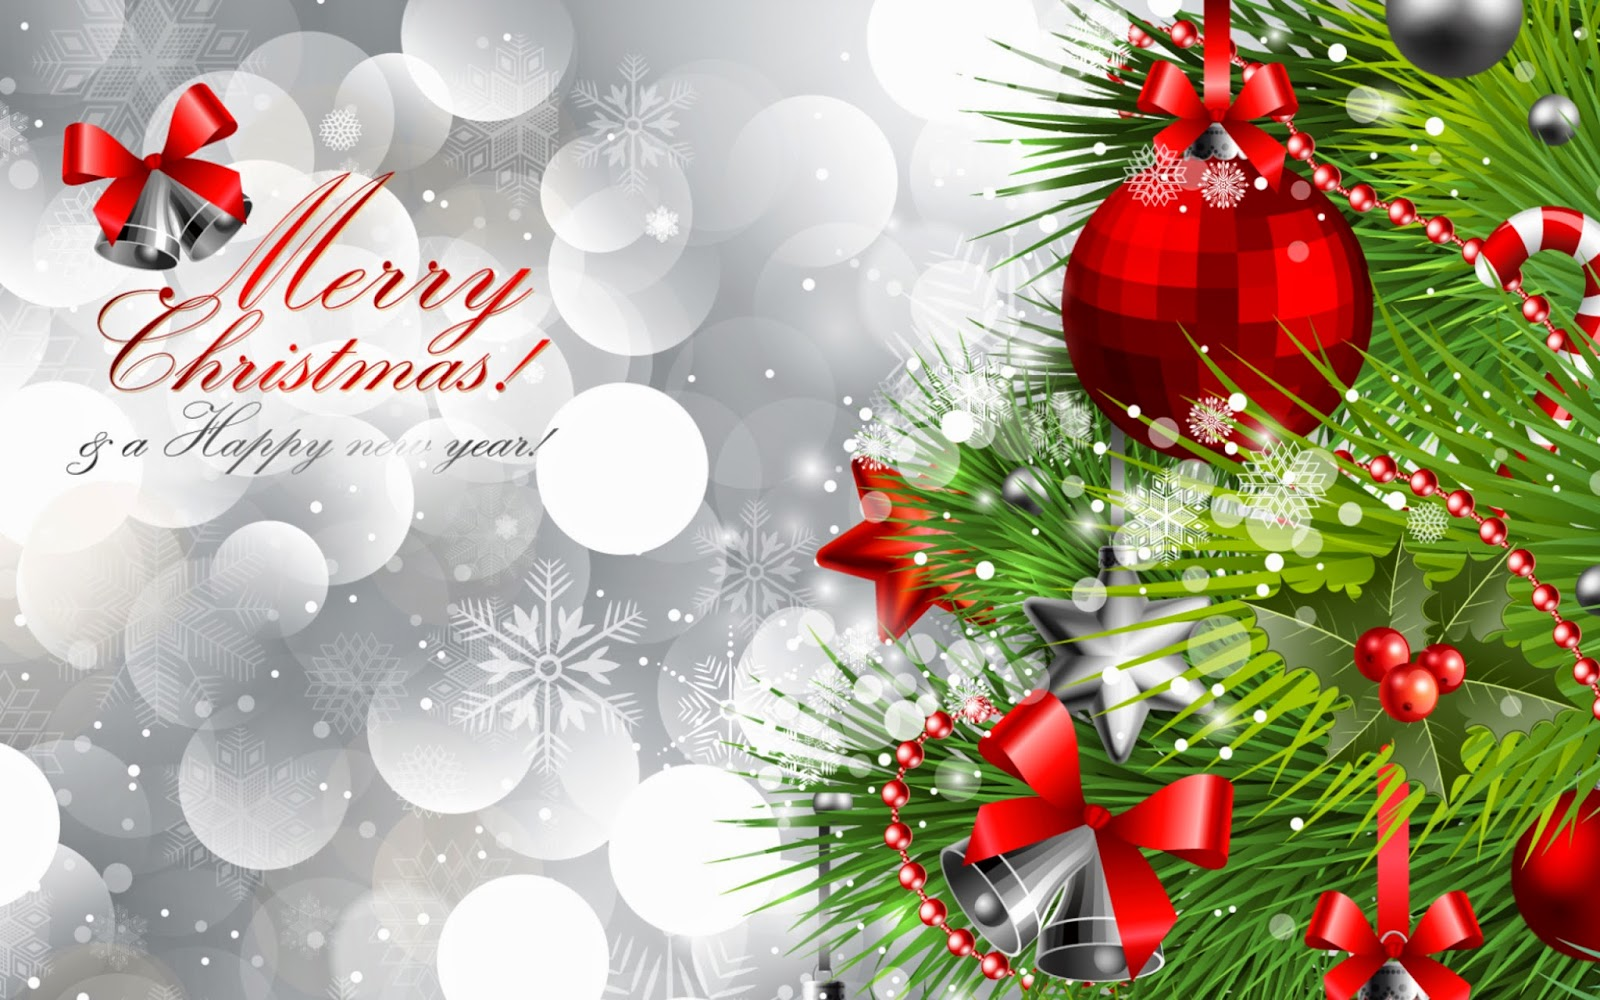 I Wish You A Merry Christmas And A Happy New Year Greetings Images